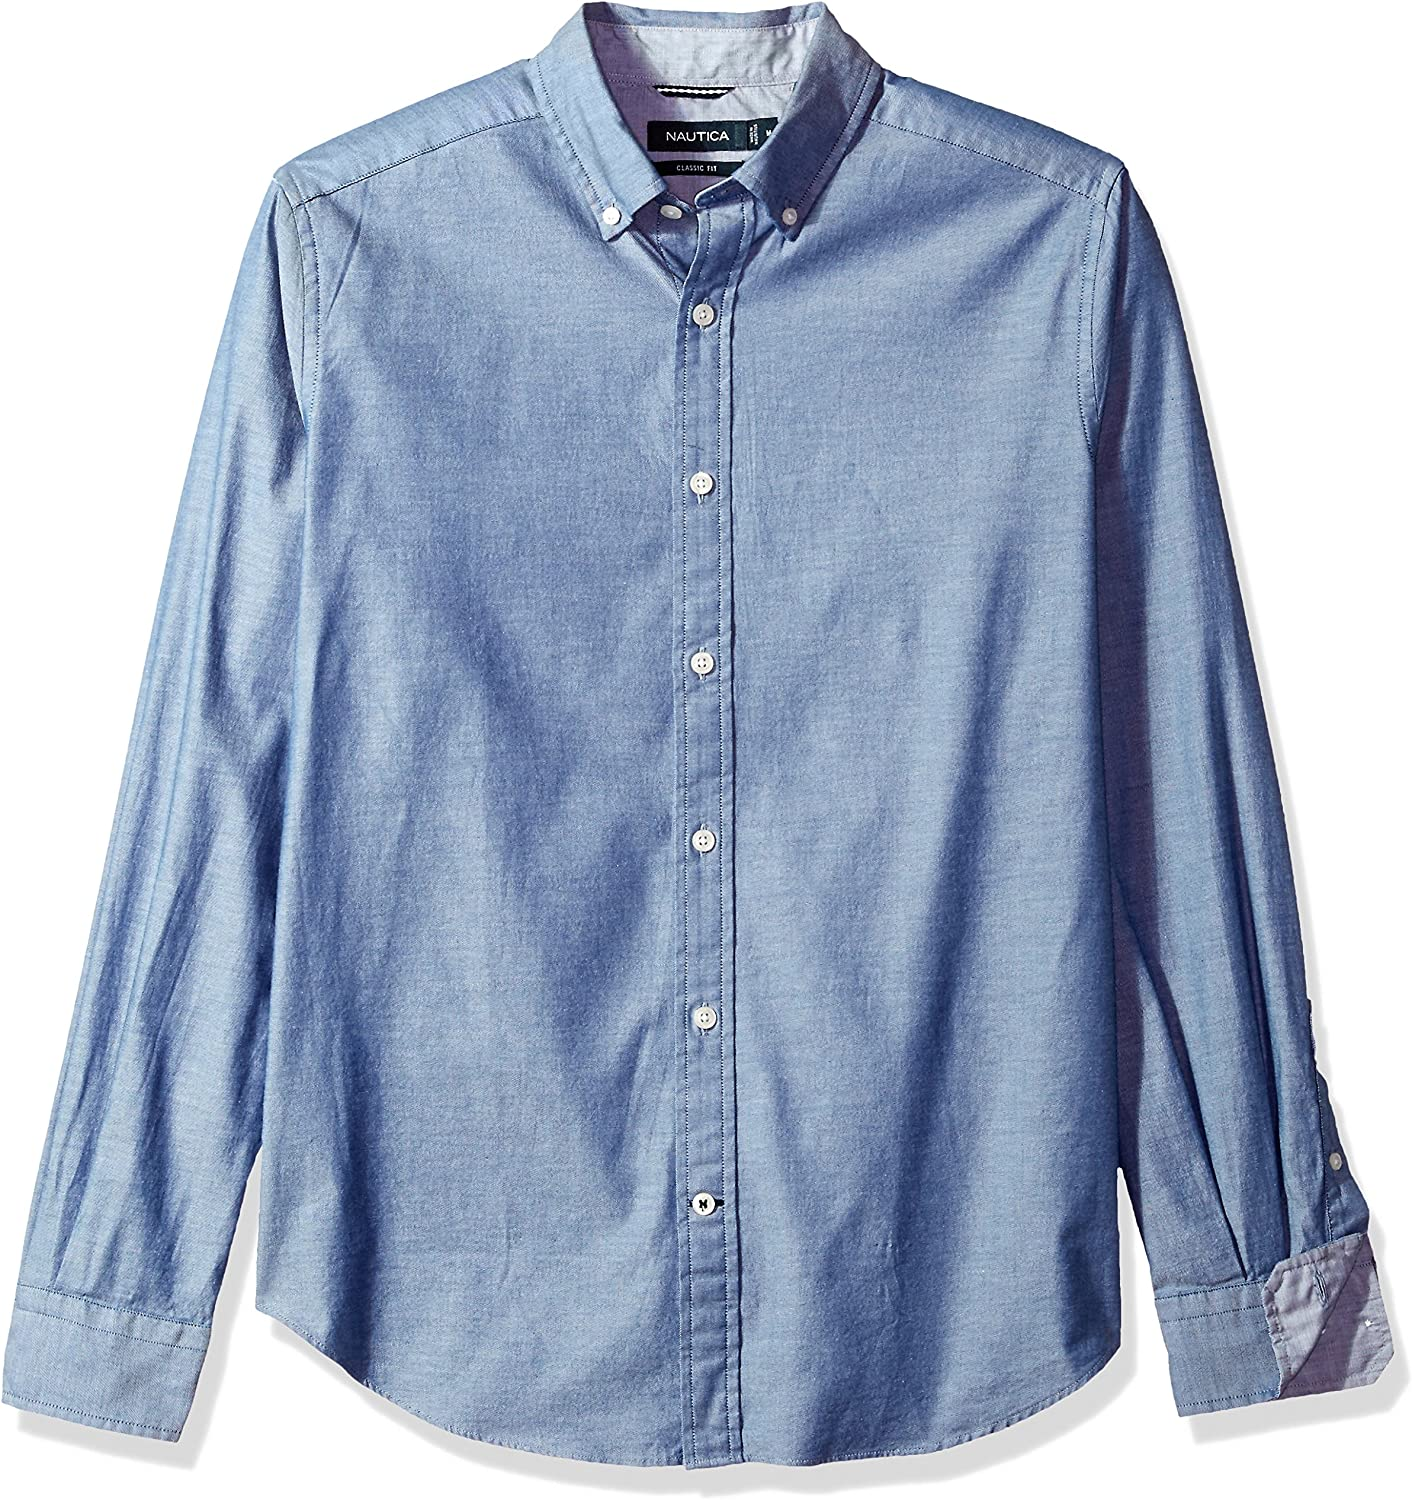 Nautica Men's Long Sleeve Slim Fit Solid Stretch Twill Button Down Shirt